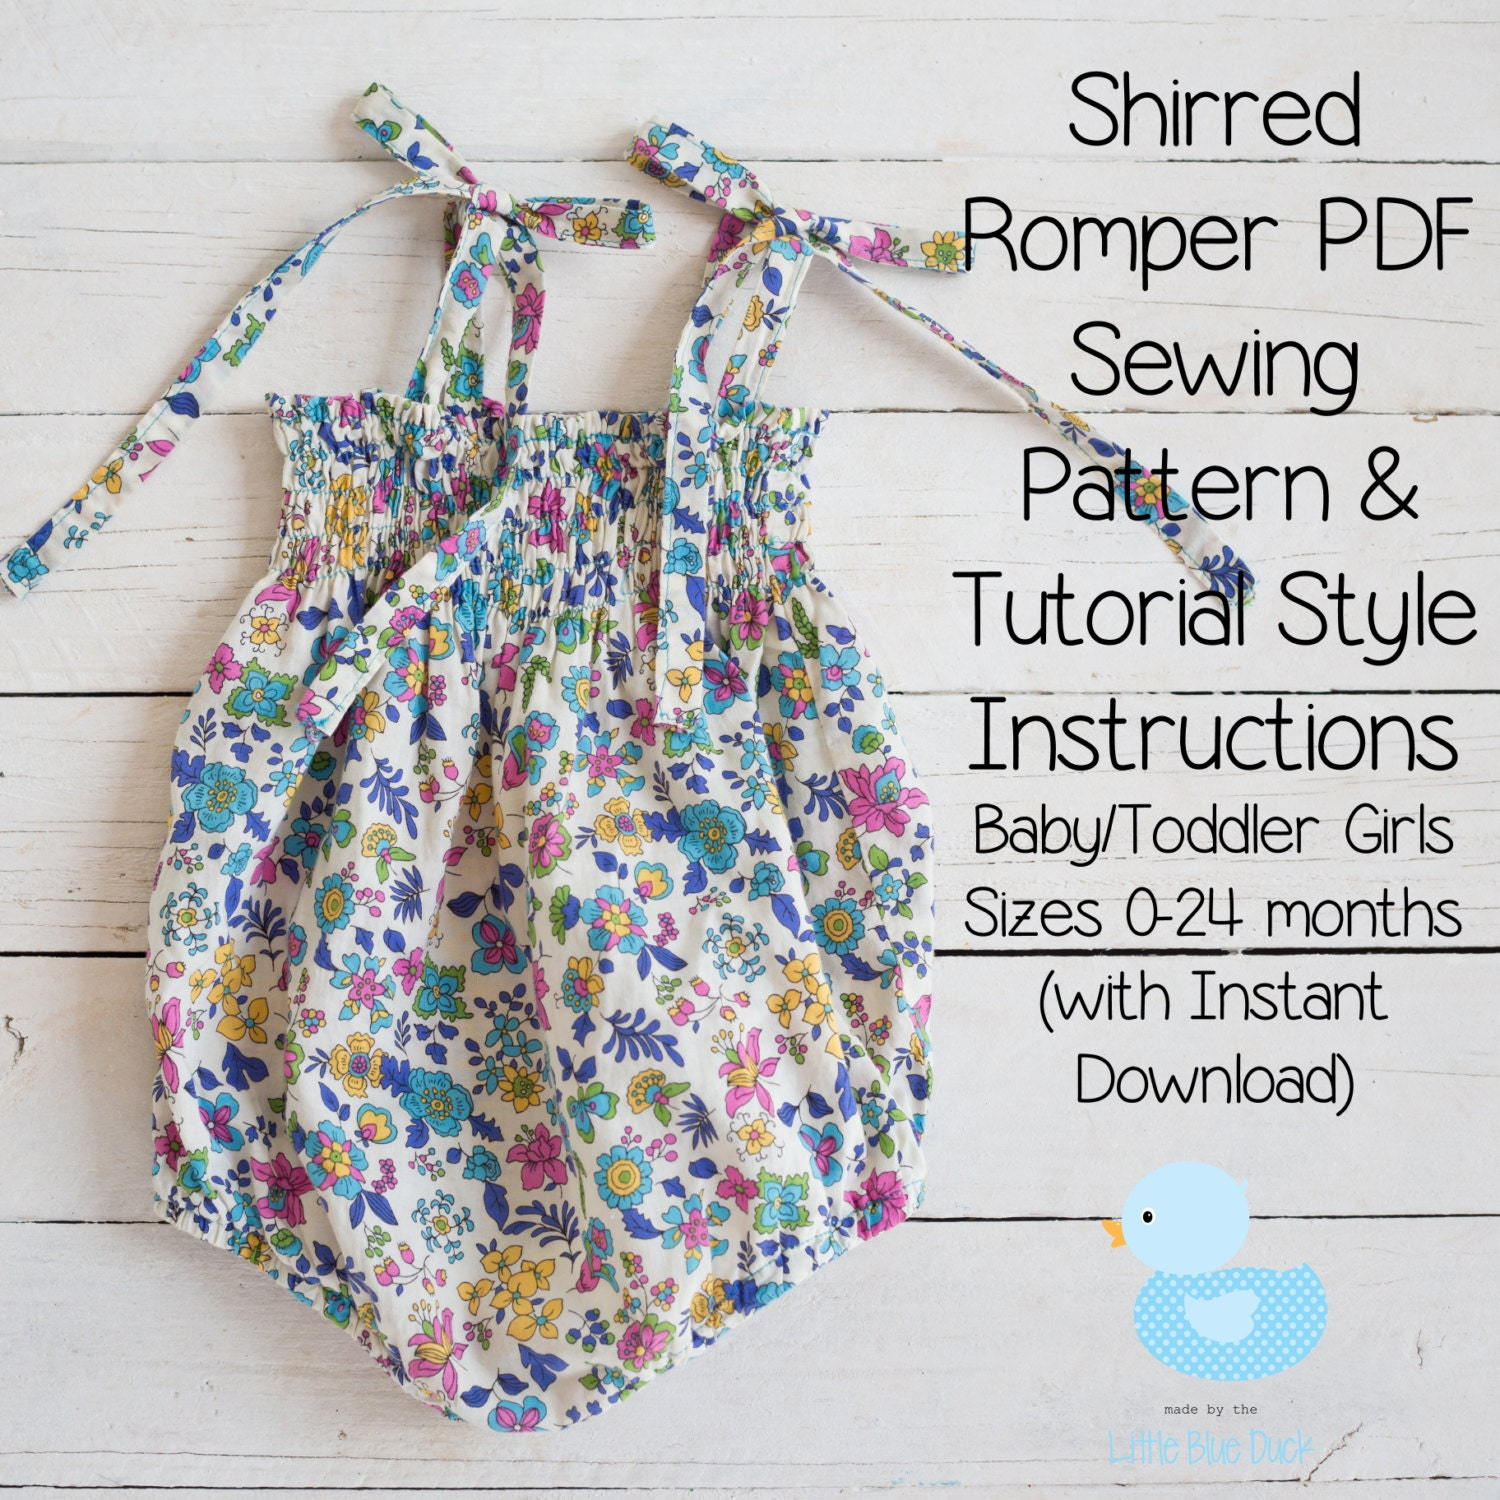 Shirred romper pdf sewing pattern tutorial style instructions this is a digital file jeuxipadfo Gallery